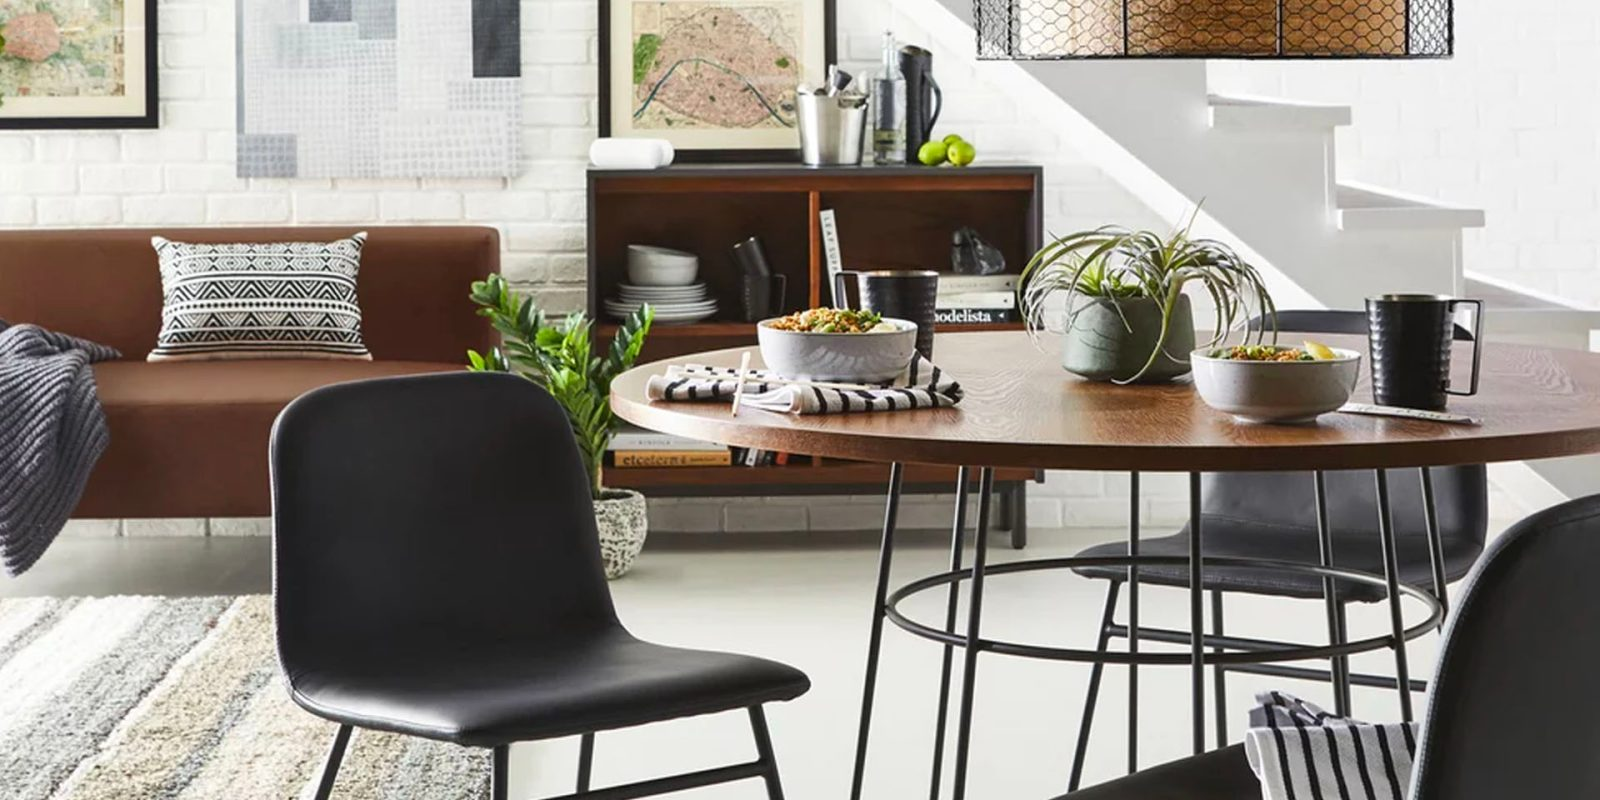 Walmarts new modern home line refreshes your space with furniture decor more from 20